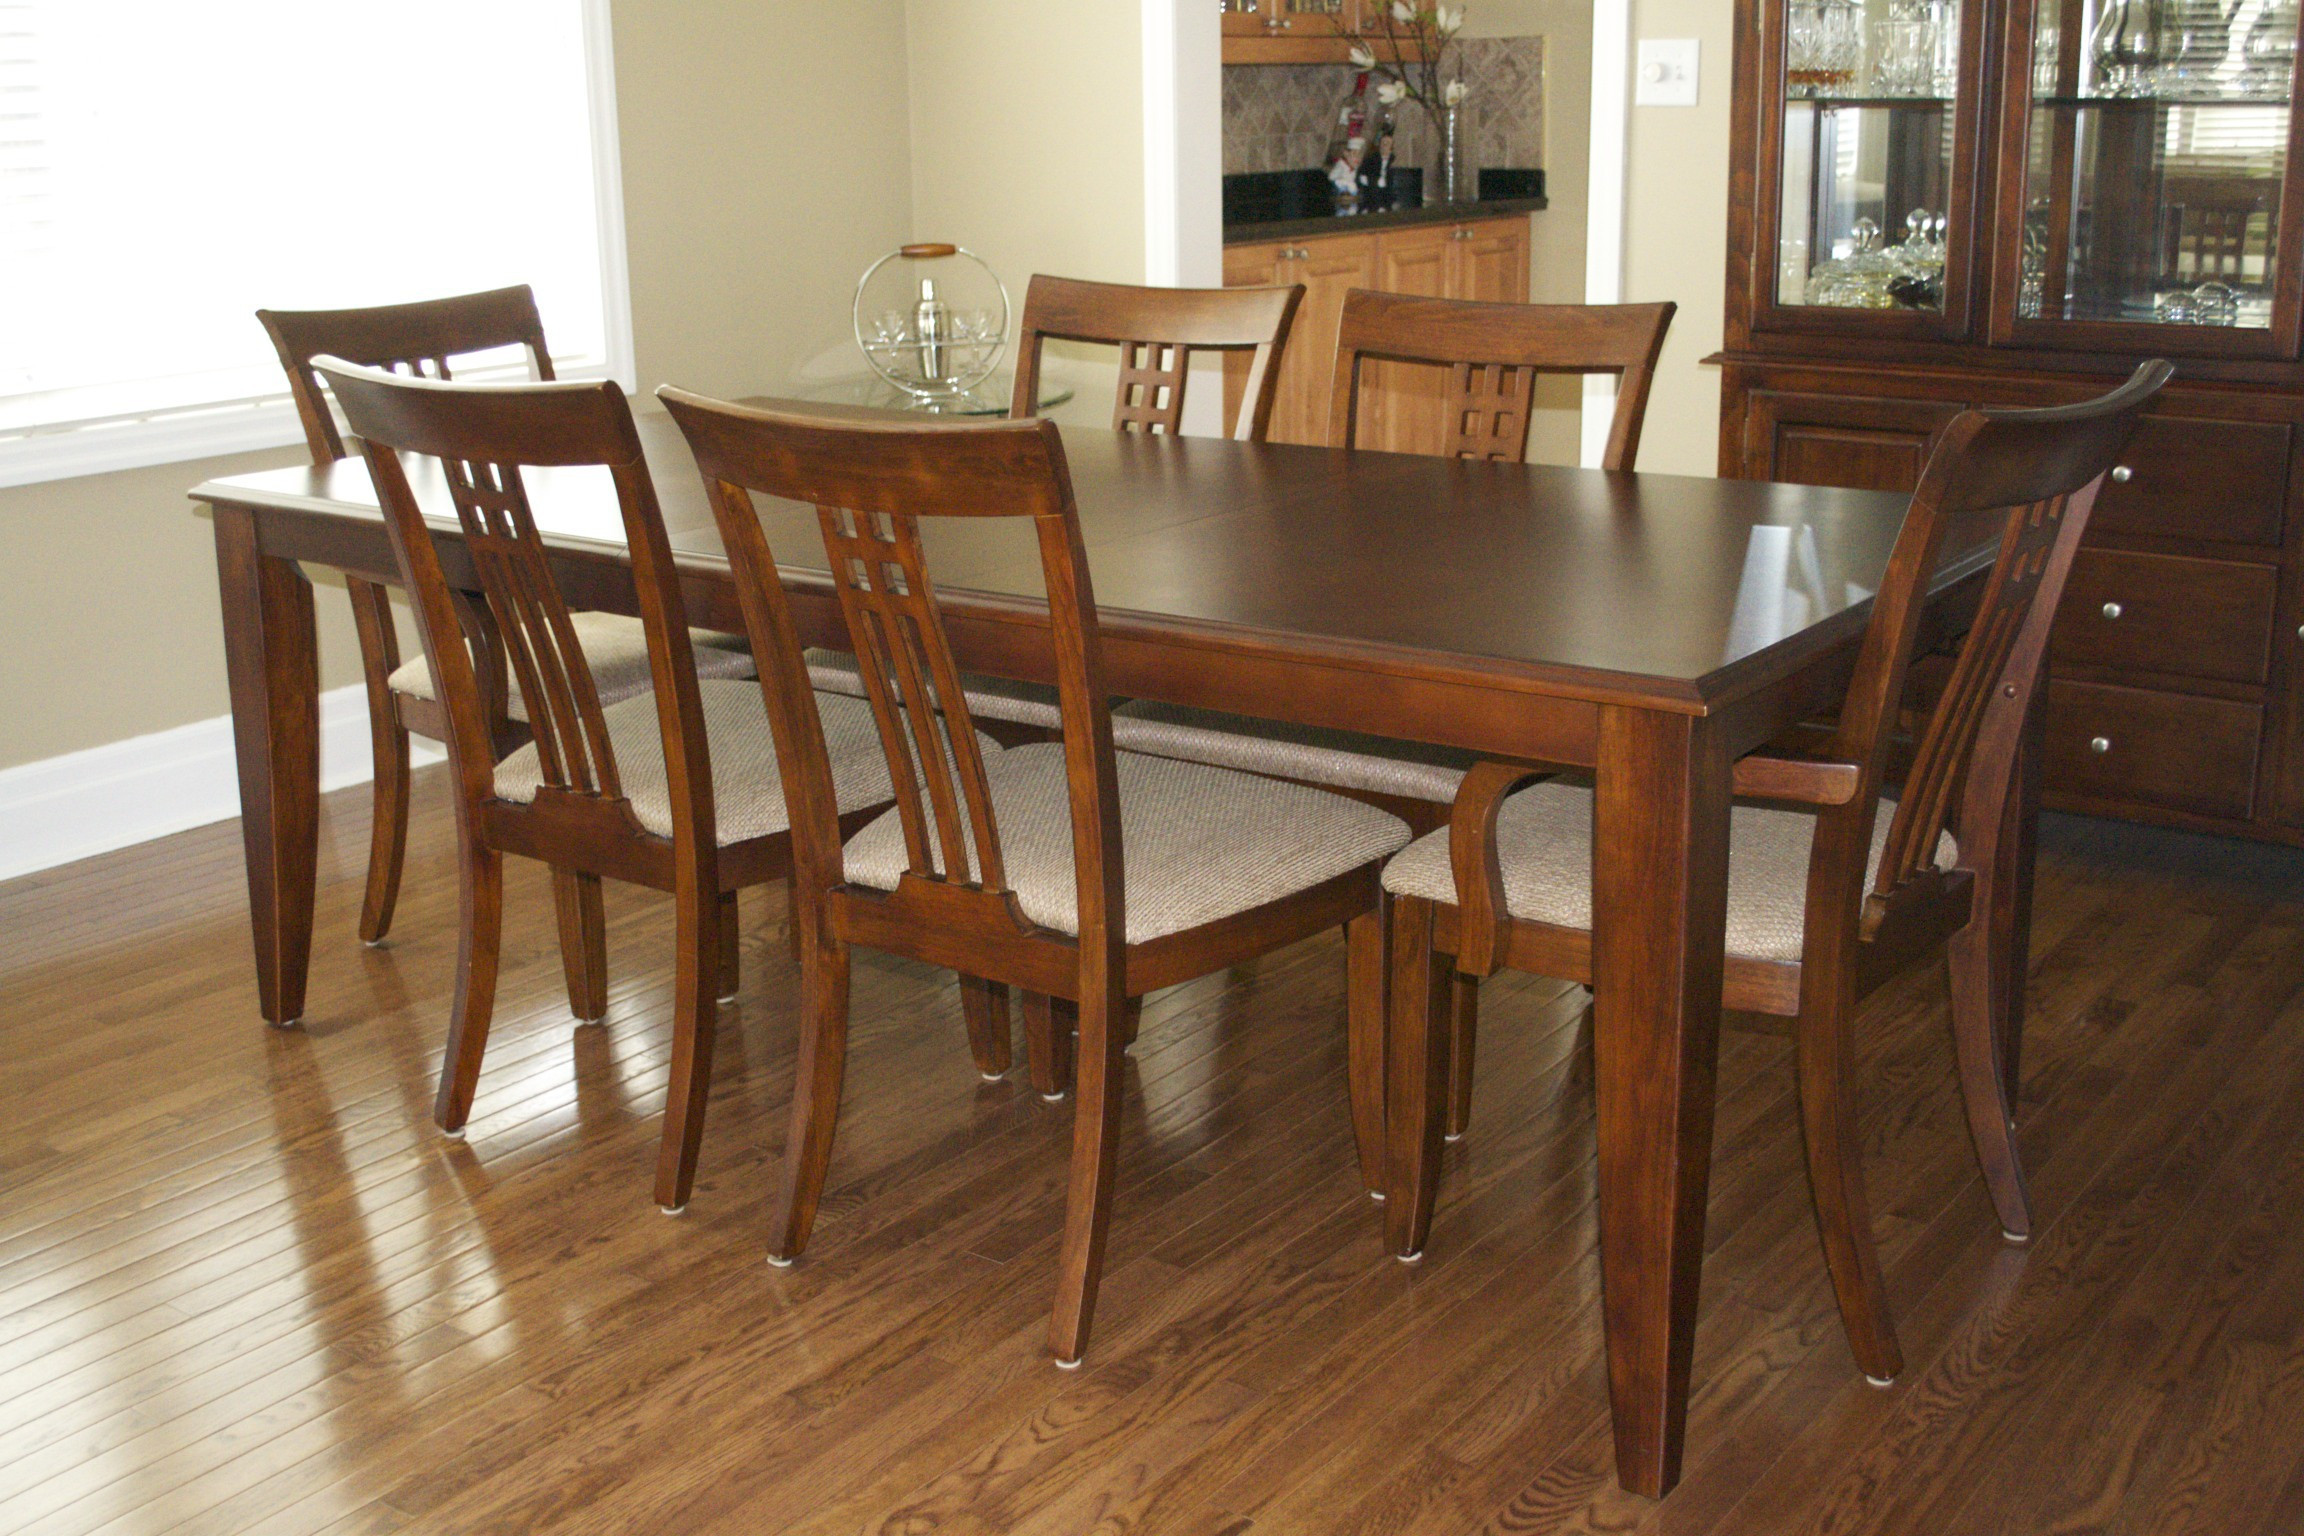 wholesale hardwood flooring prices of used dining table and chairs sale elegant buy used patio furniture within used dining table and chairs sale new article with tag garden wooden chairs for sale of